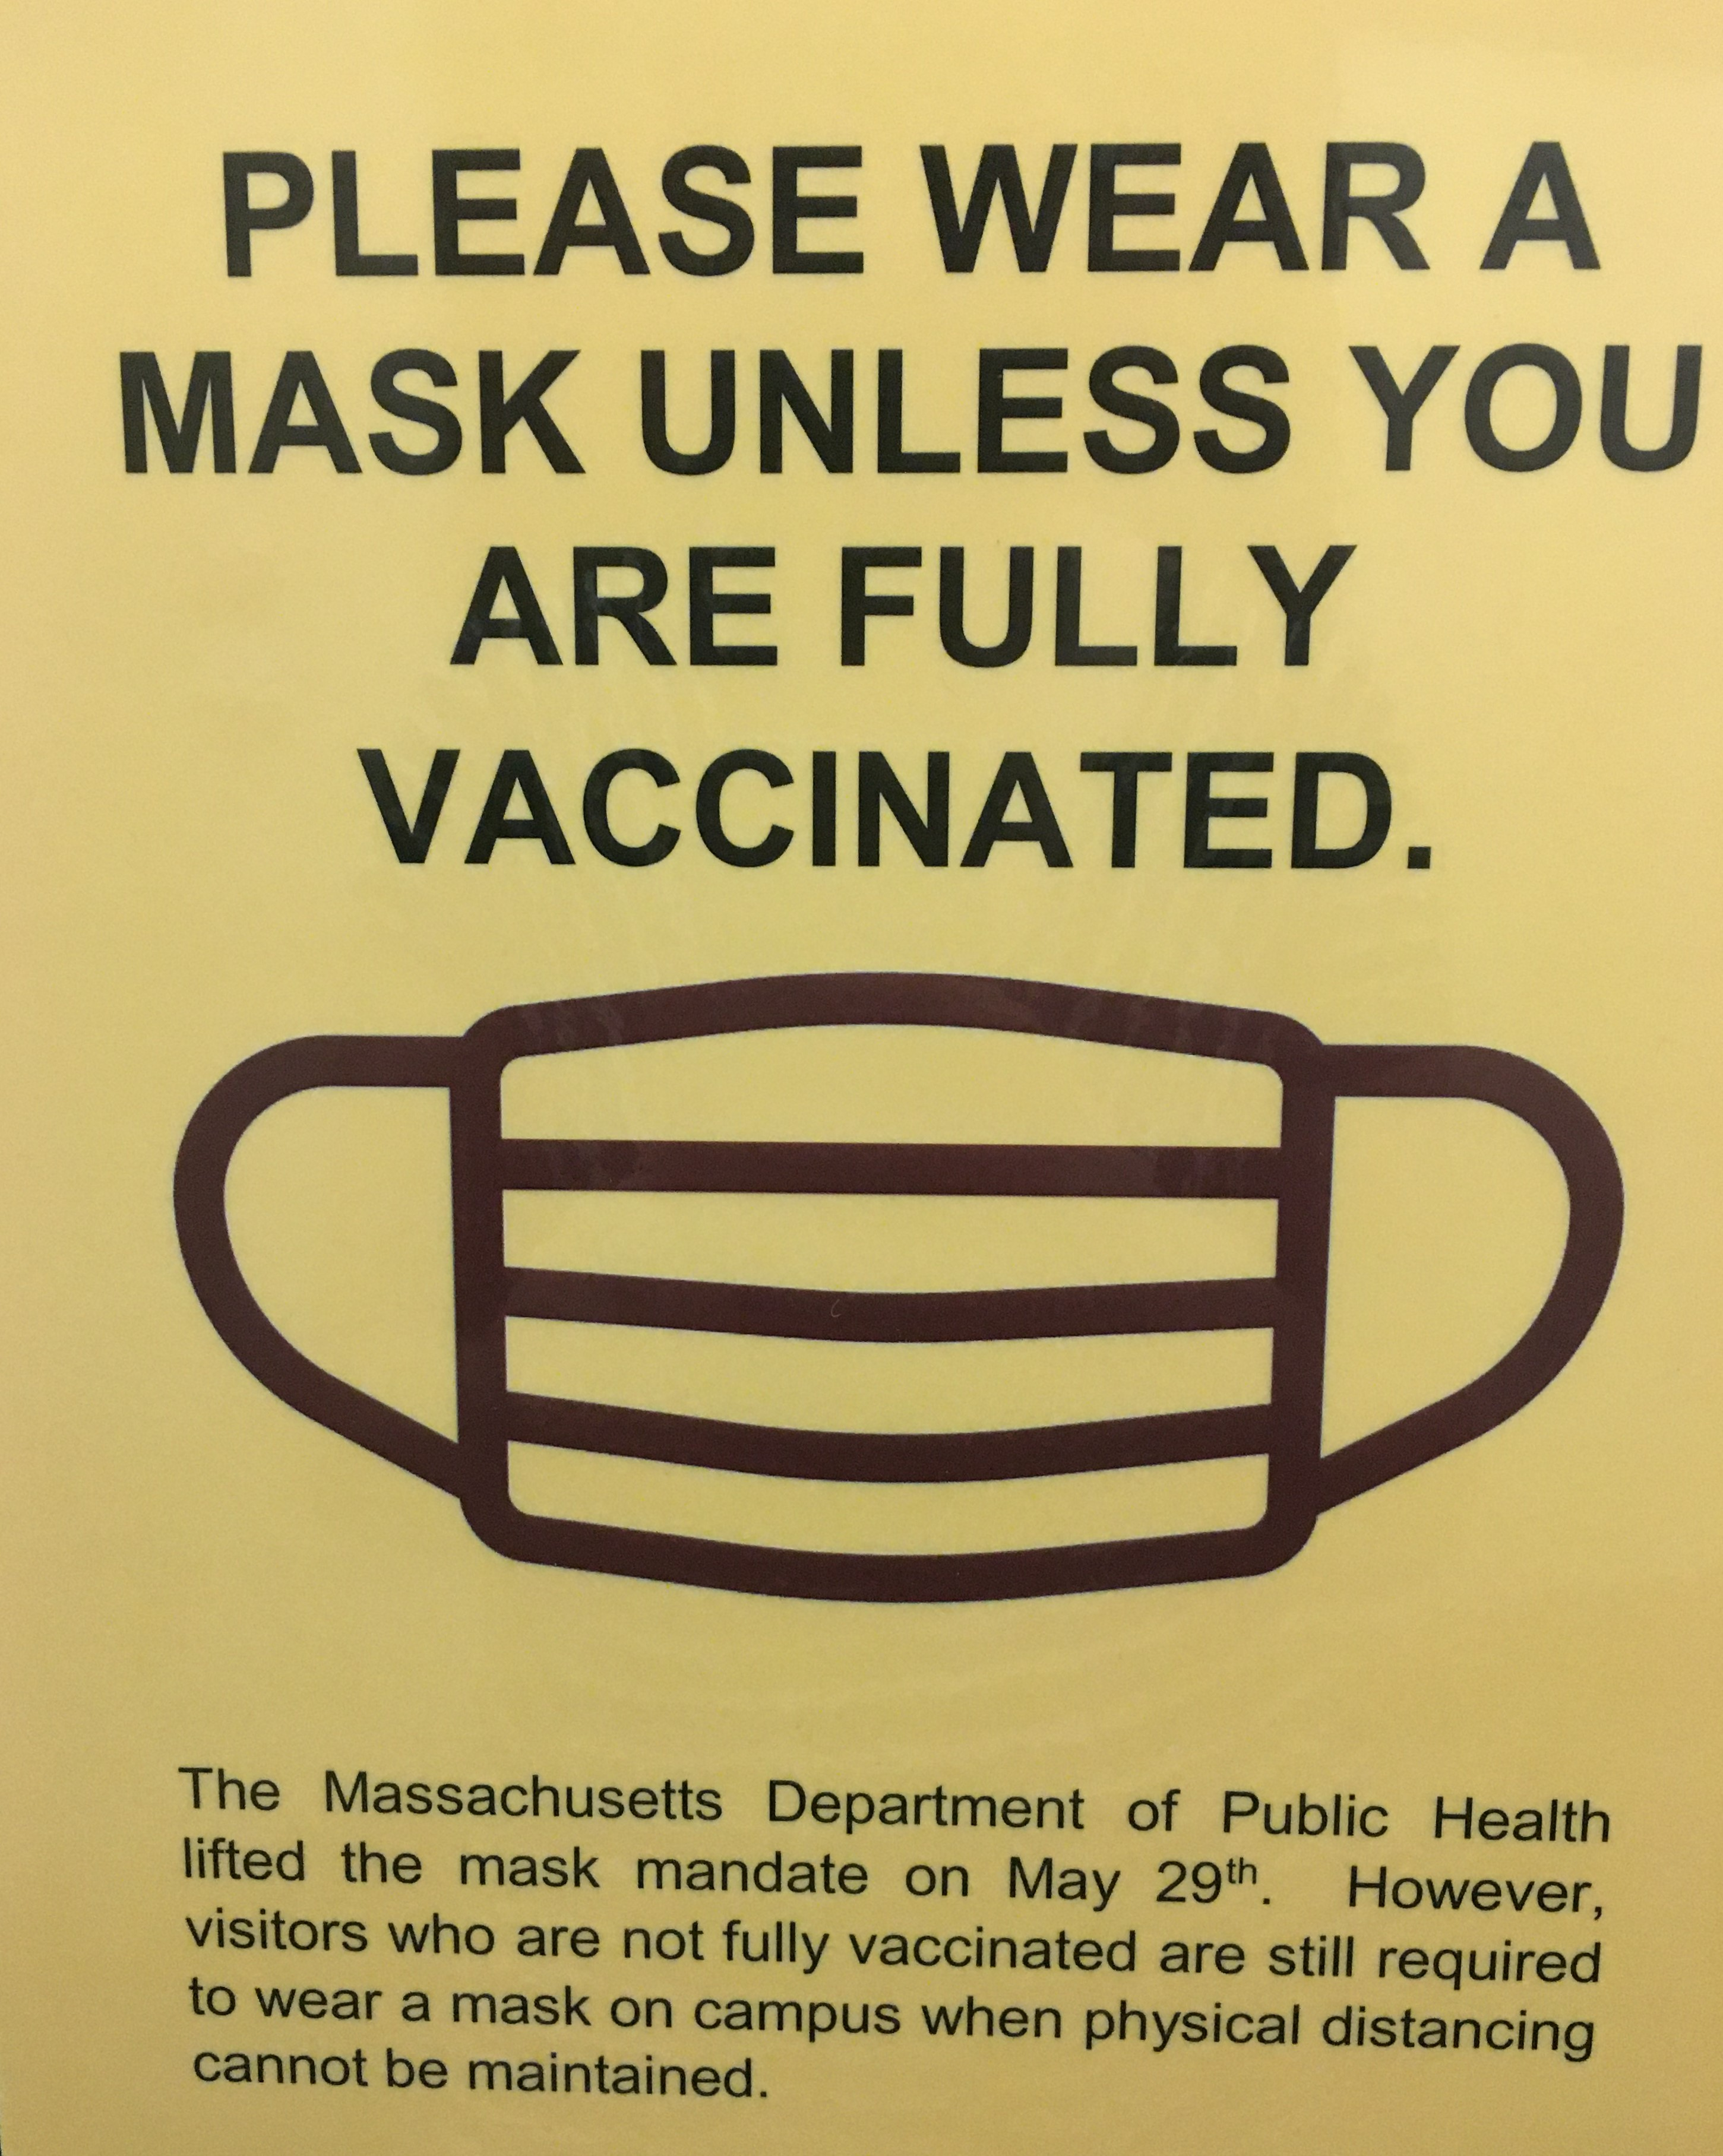 """Sign reading """"Please Wear A Mask Unless You are Fully Vaccinated."""" Smaller text underneath reads """"The Massachusetts Department of Public Health lifted the mask mandate on May 29th. However, visitors who are not fully vaccinated are still required to wear a mask on campus when physical distancing cannot be maintained."""""""